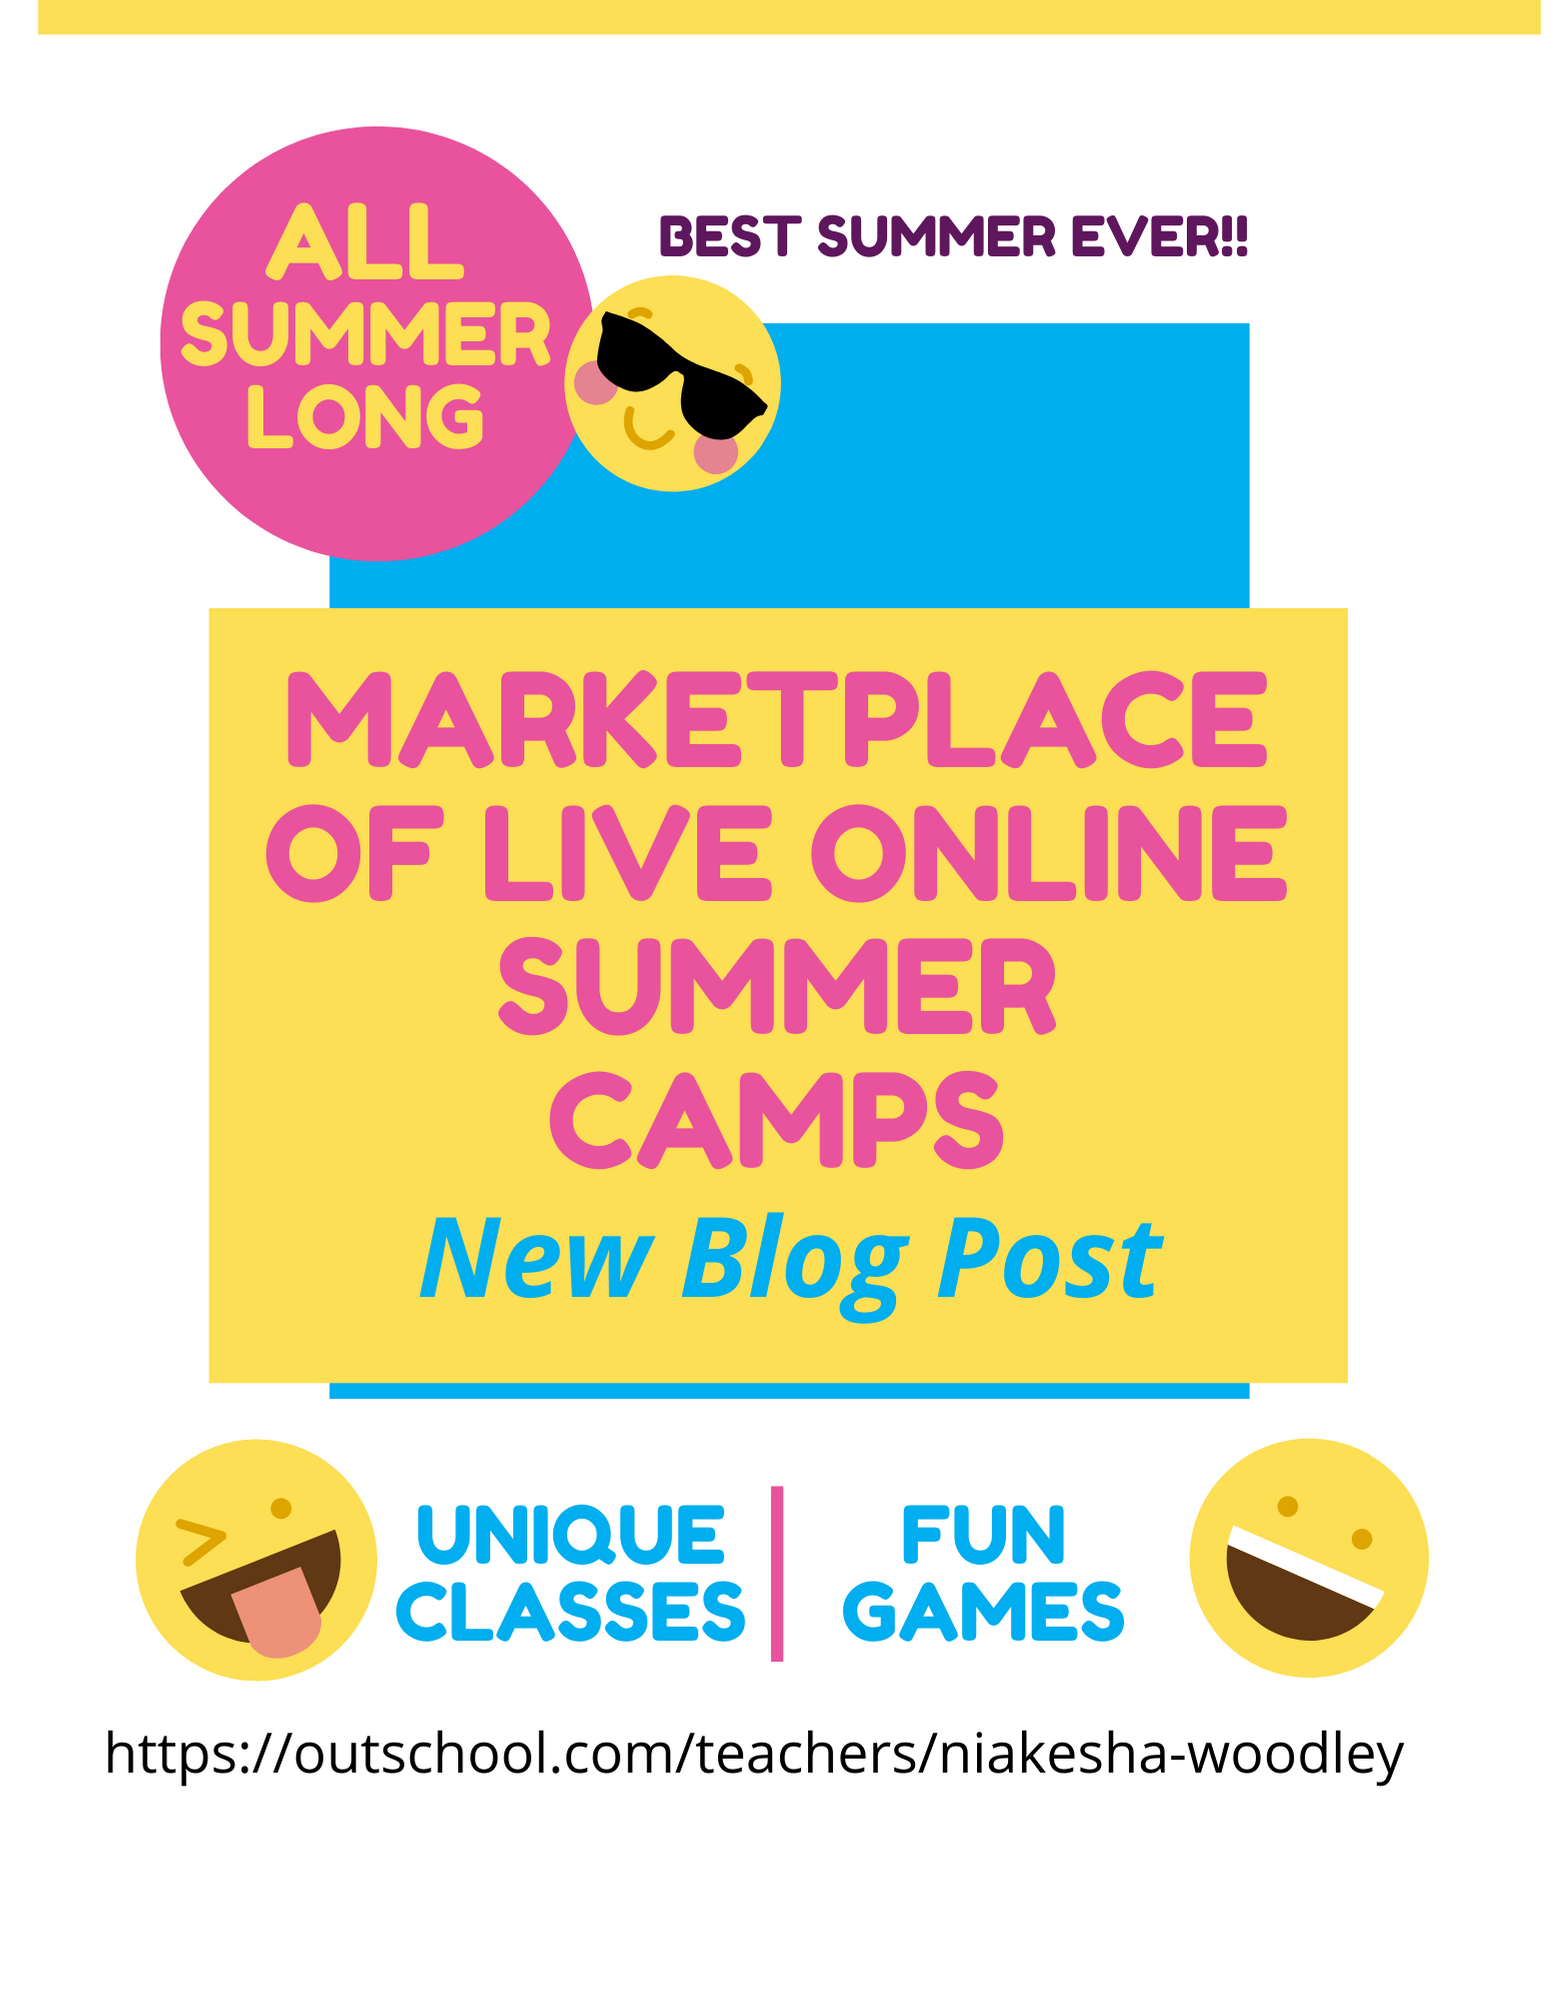 A Marketplace of Live Online Classes for k-12 With Unique Summer Learning Experiences – Ready to Hear Best Summer EVER!